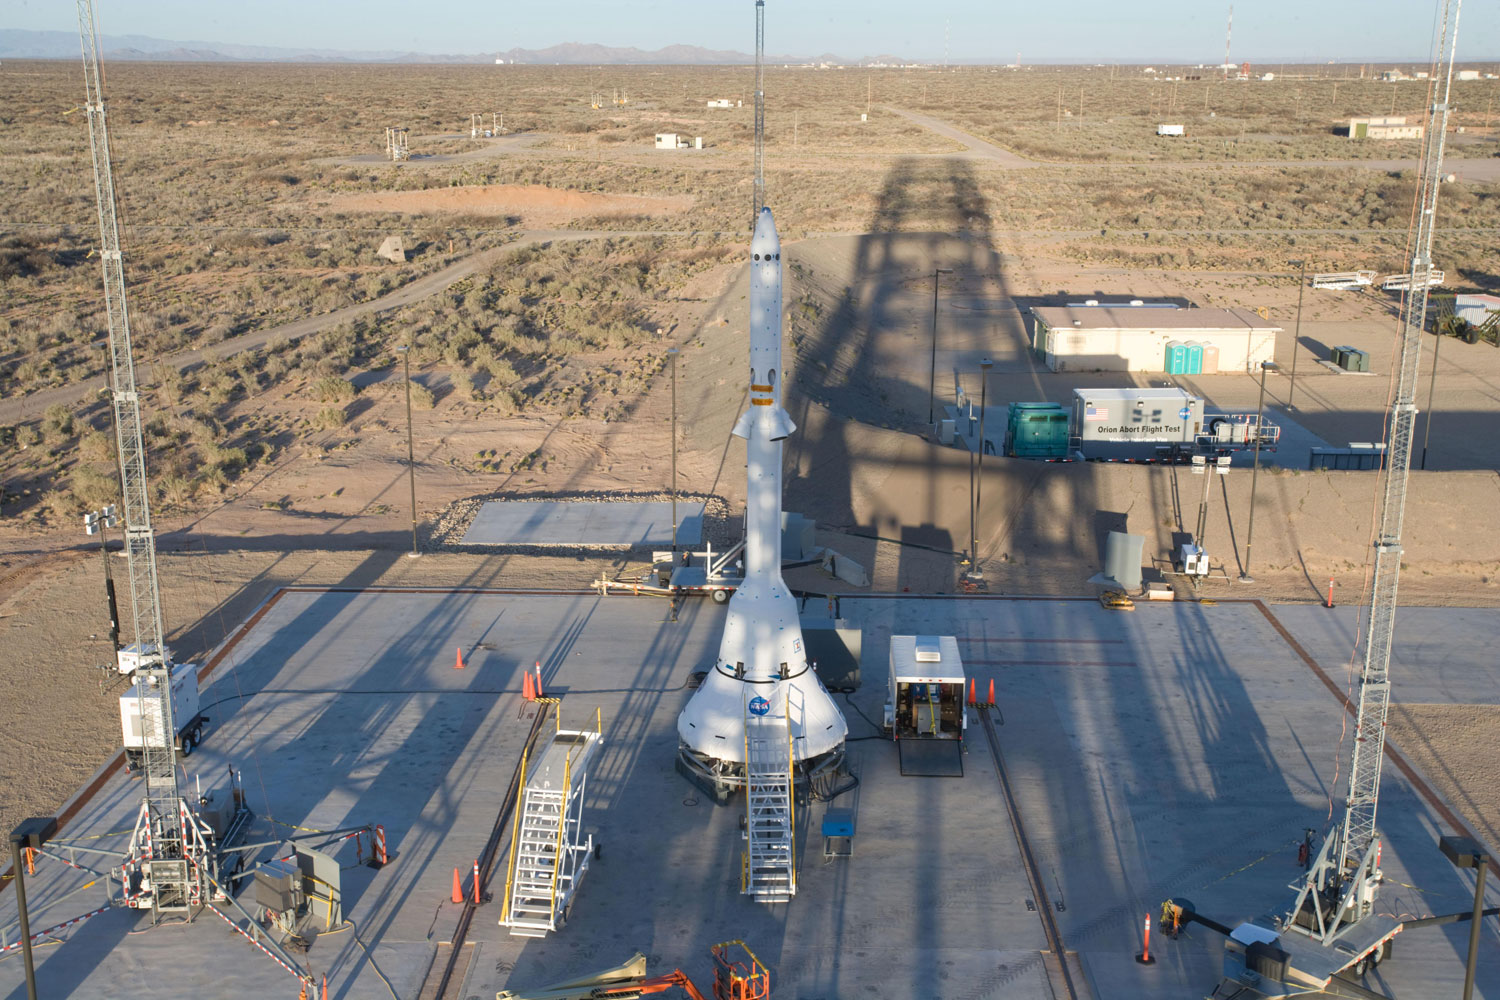 The launch-abort rockets and an Orion mock-up are prepared on the pad for their test flight at the U.S. Army's White Sands Missile Range in New Mexico, on April 8, 2010.